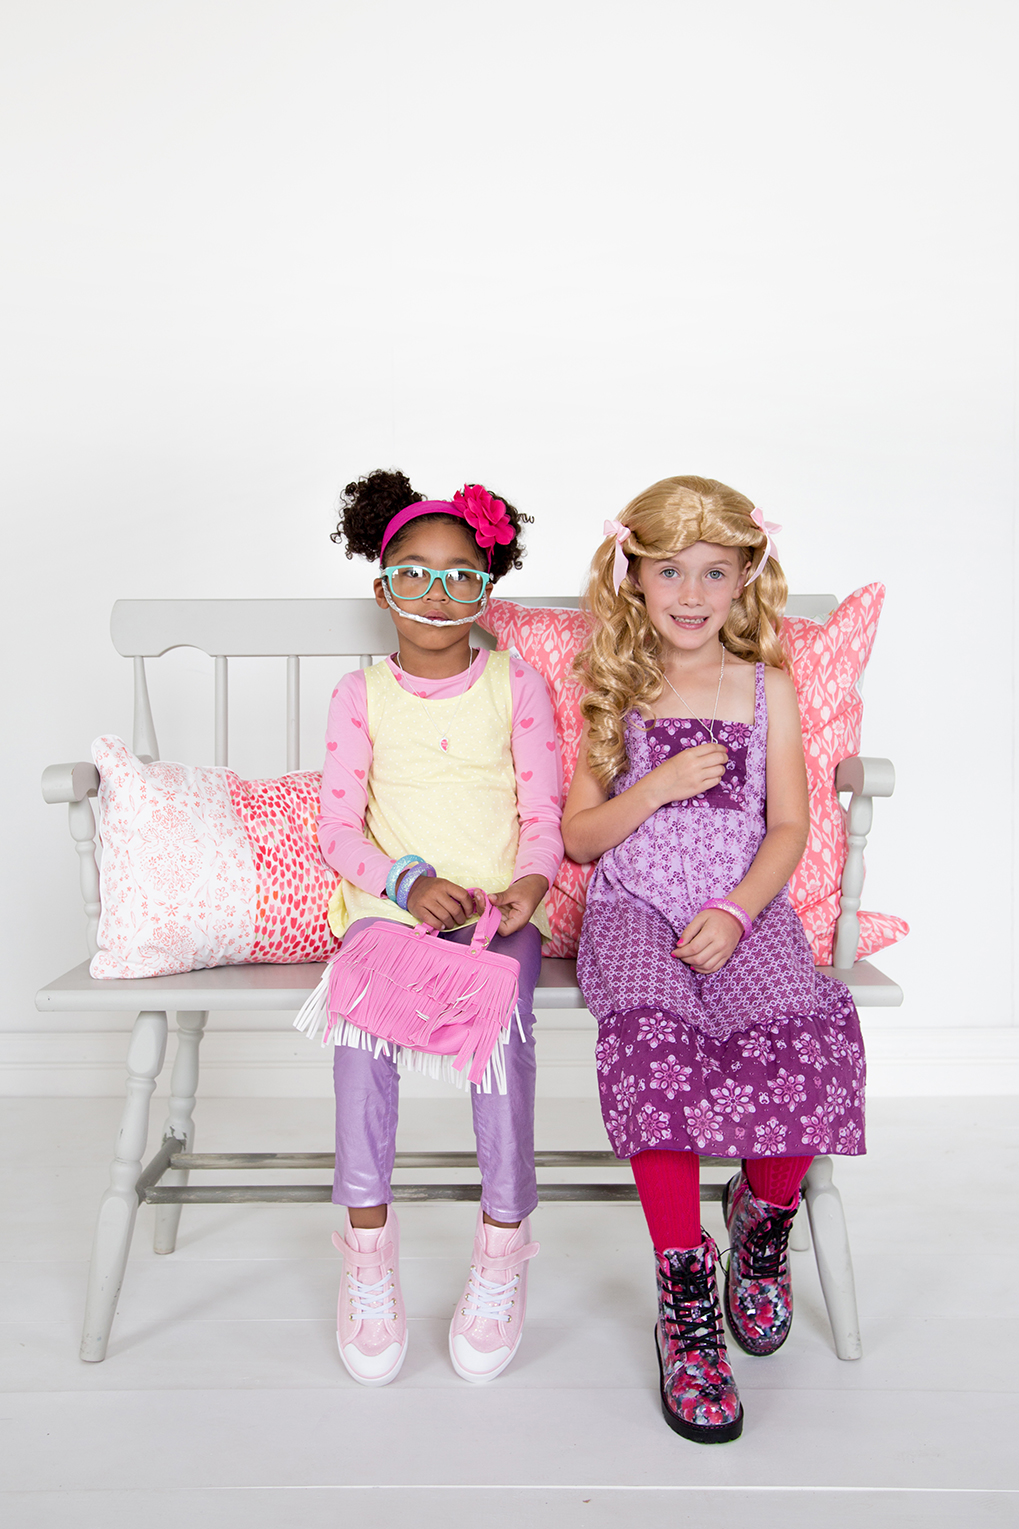 jimmy-fallon-ew-costumes-for-kids